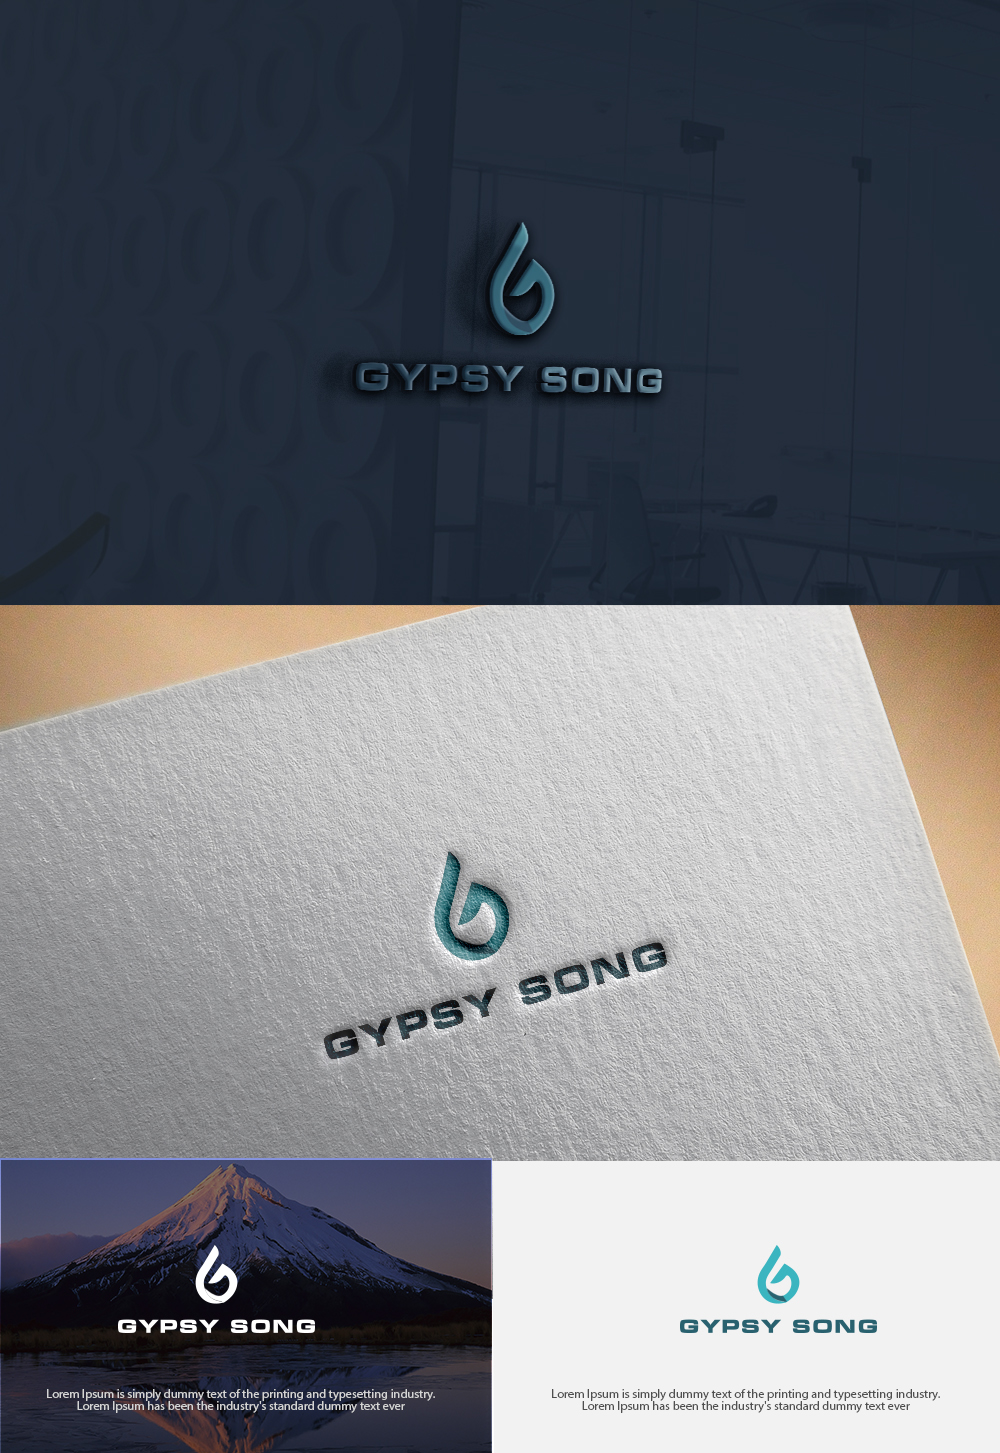 Elegant serious home furniture logo design for g or gsd or gypsy elegant serious home furniture logo design for gypsy song design in united states design 17765289 reheart Image collections